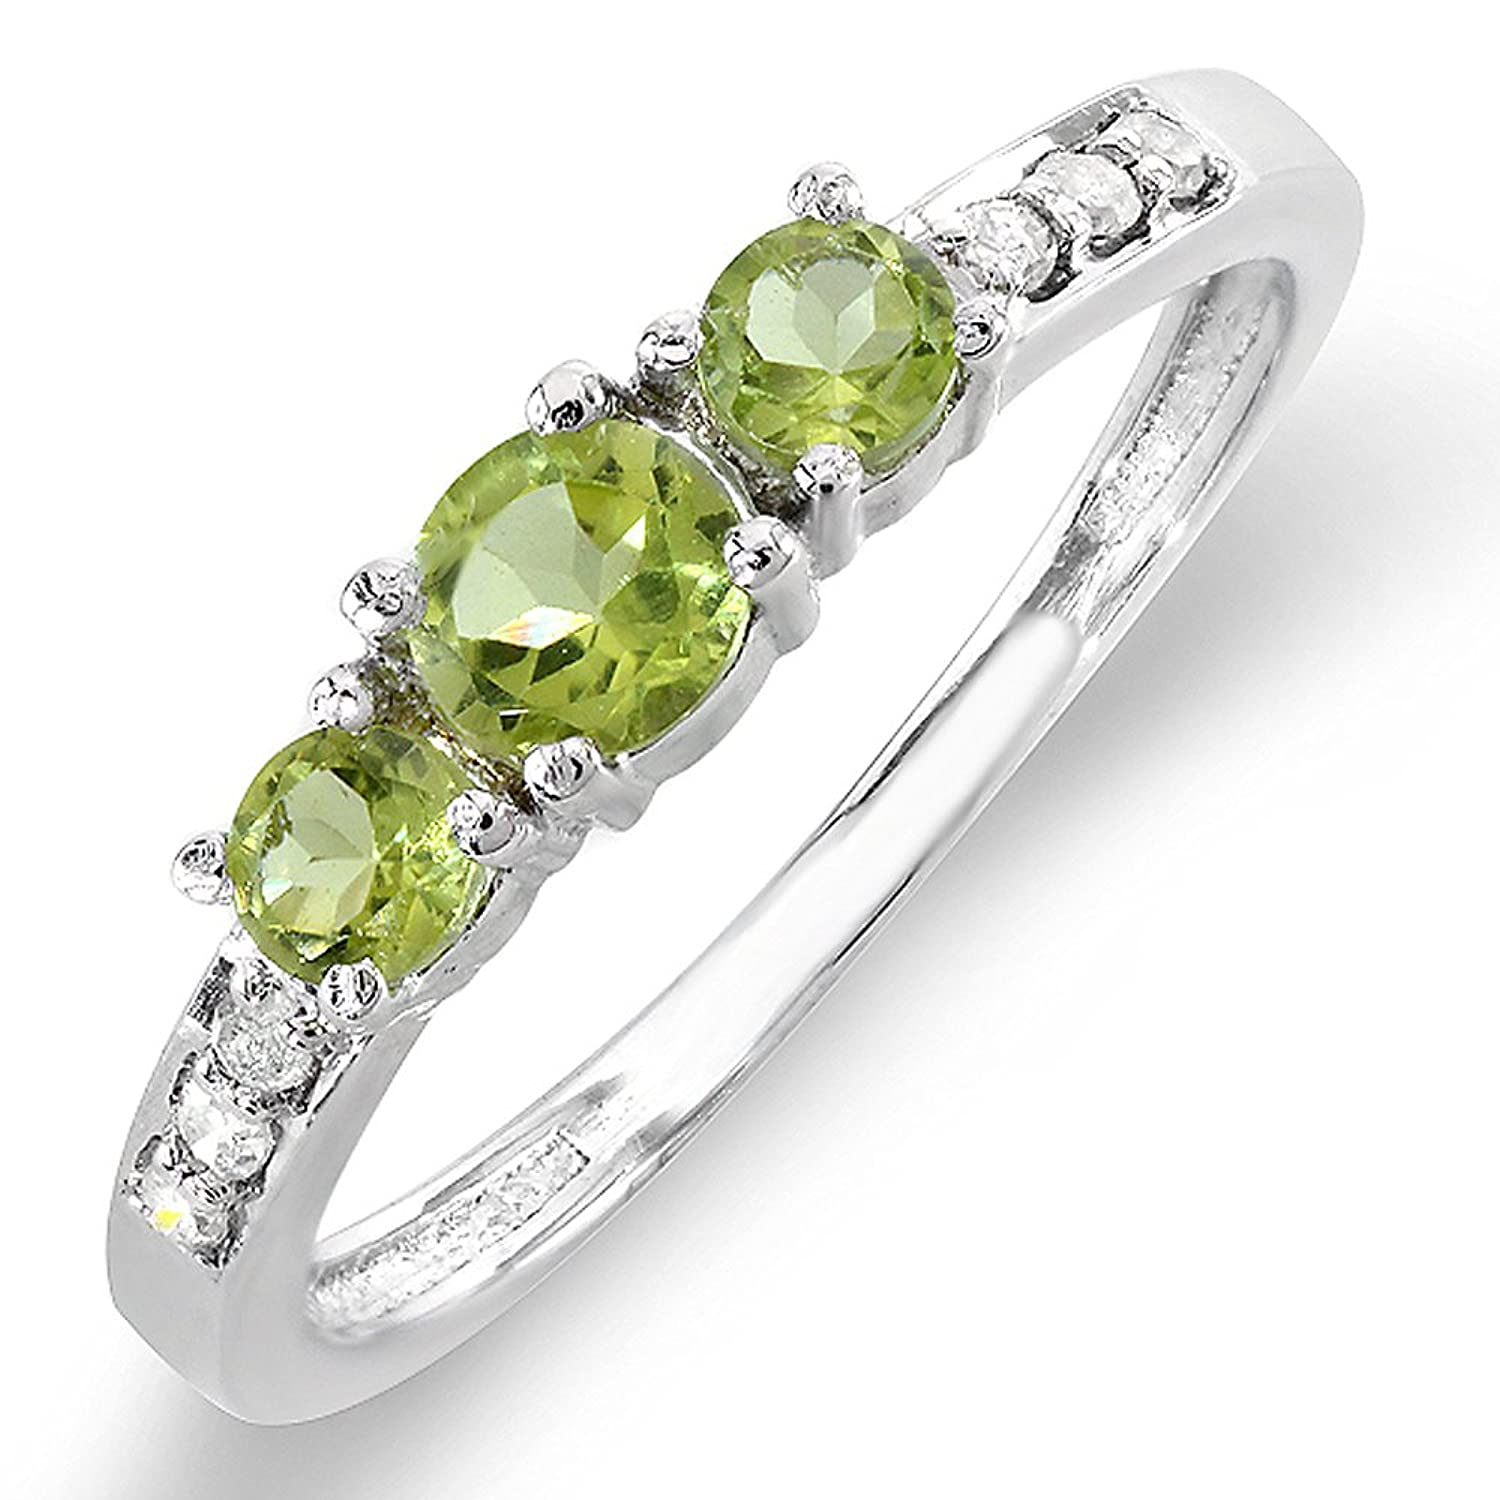 cut green birthstone from august ring leige peridot women in cushion wedding for silver gemstone rings natural fine gift jewelry item